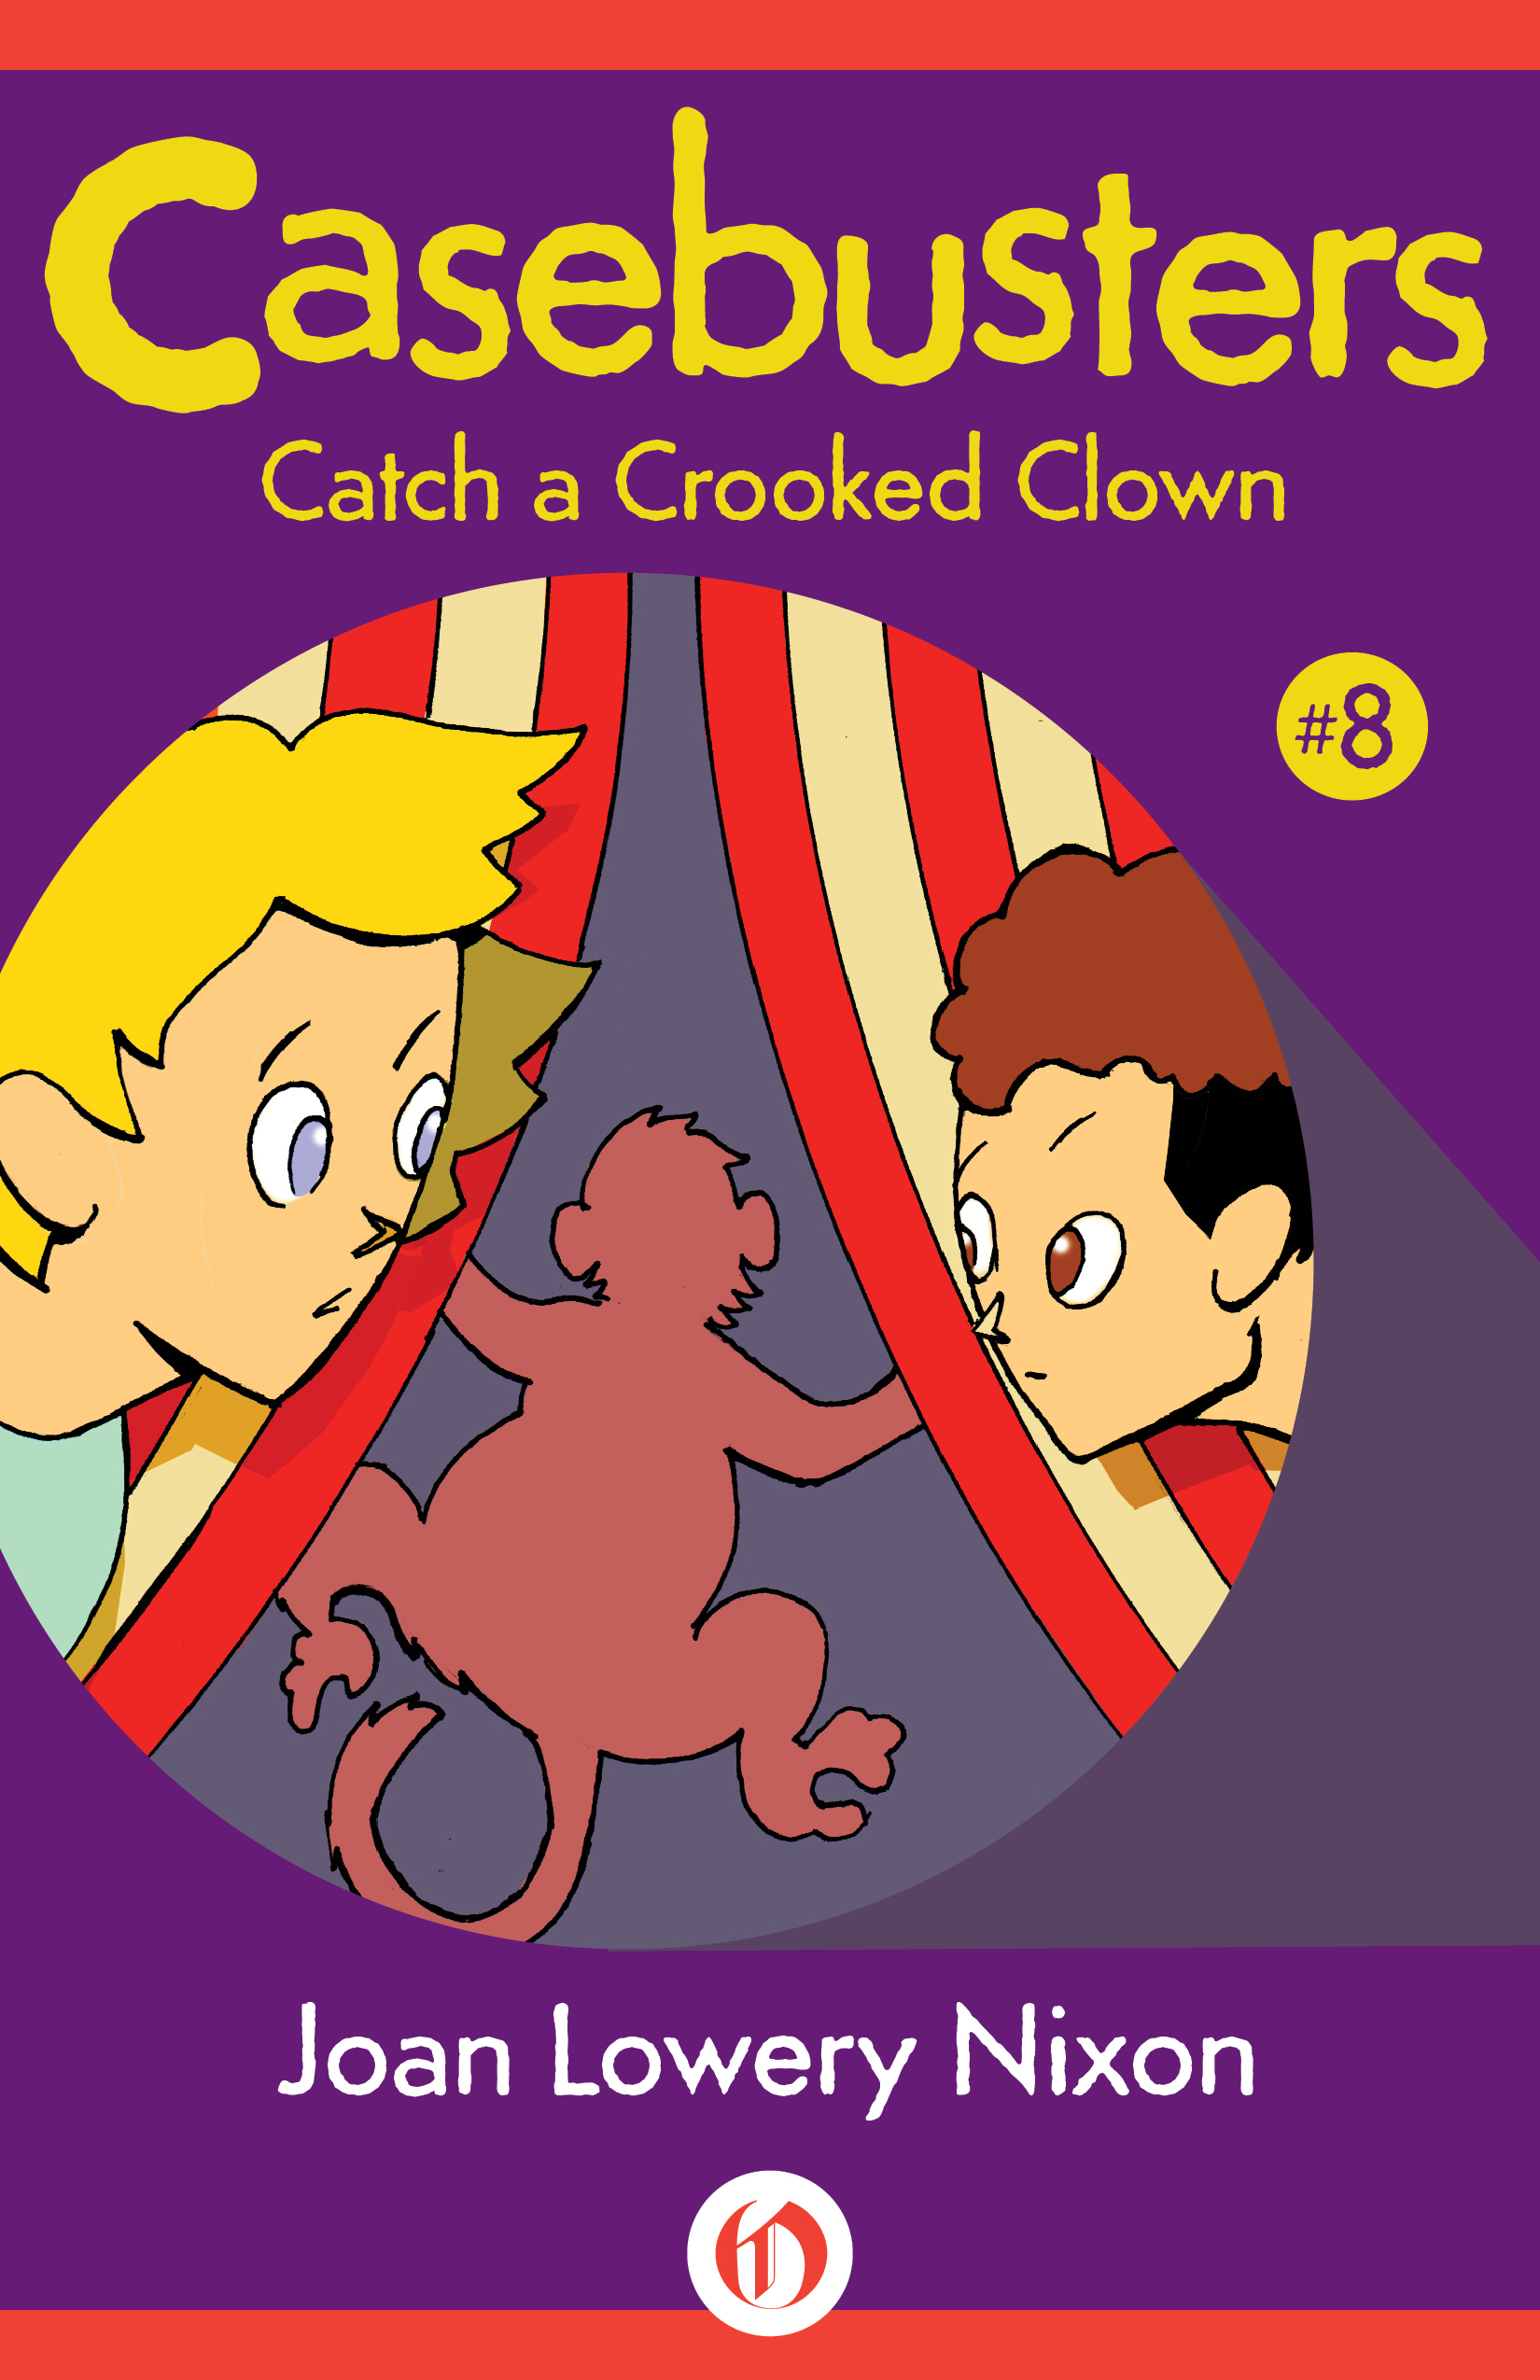 Catch a Crooked Clown: Casebusters #8